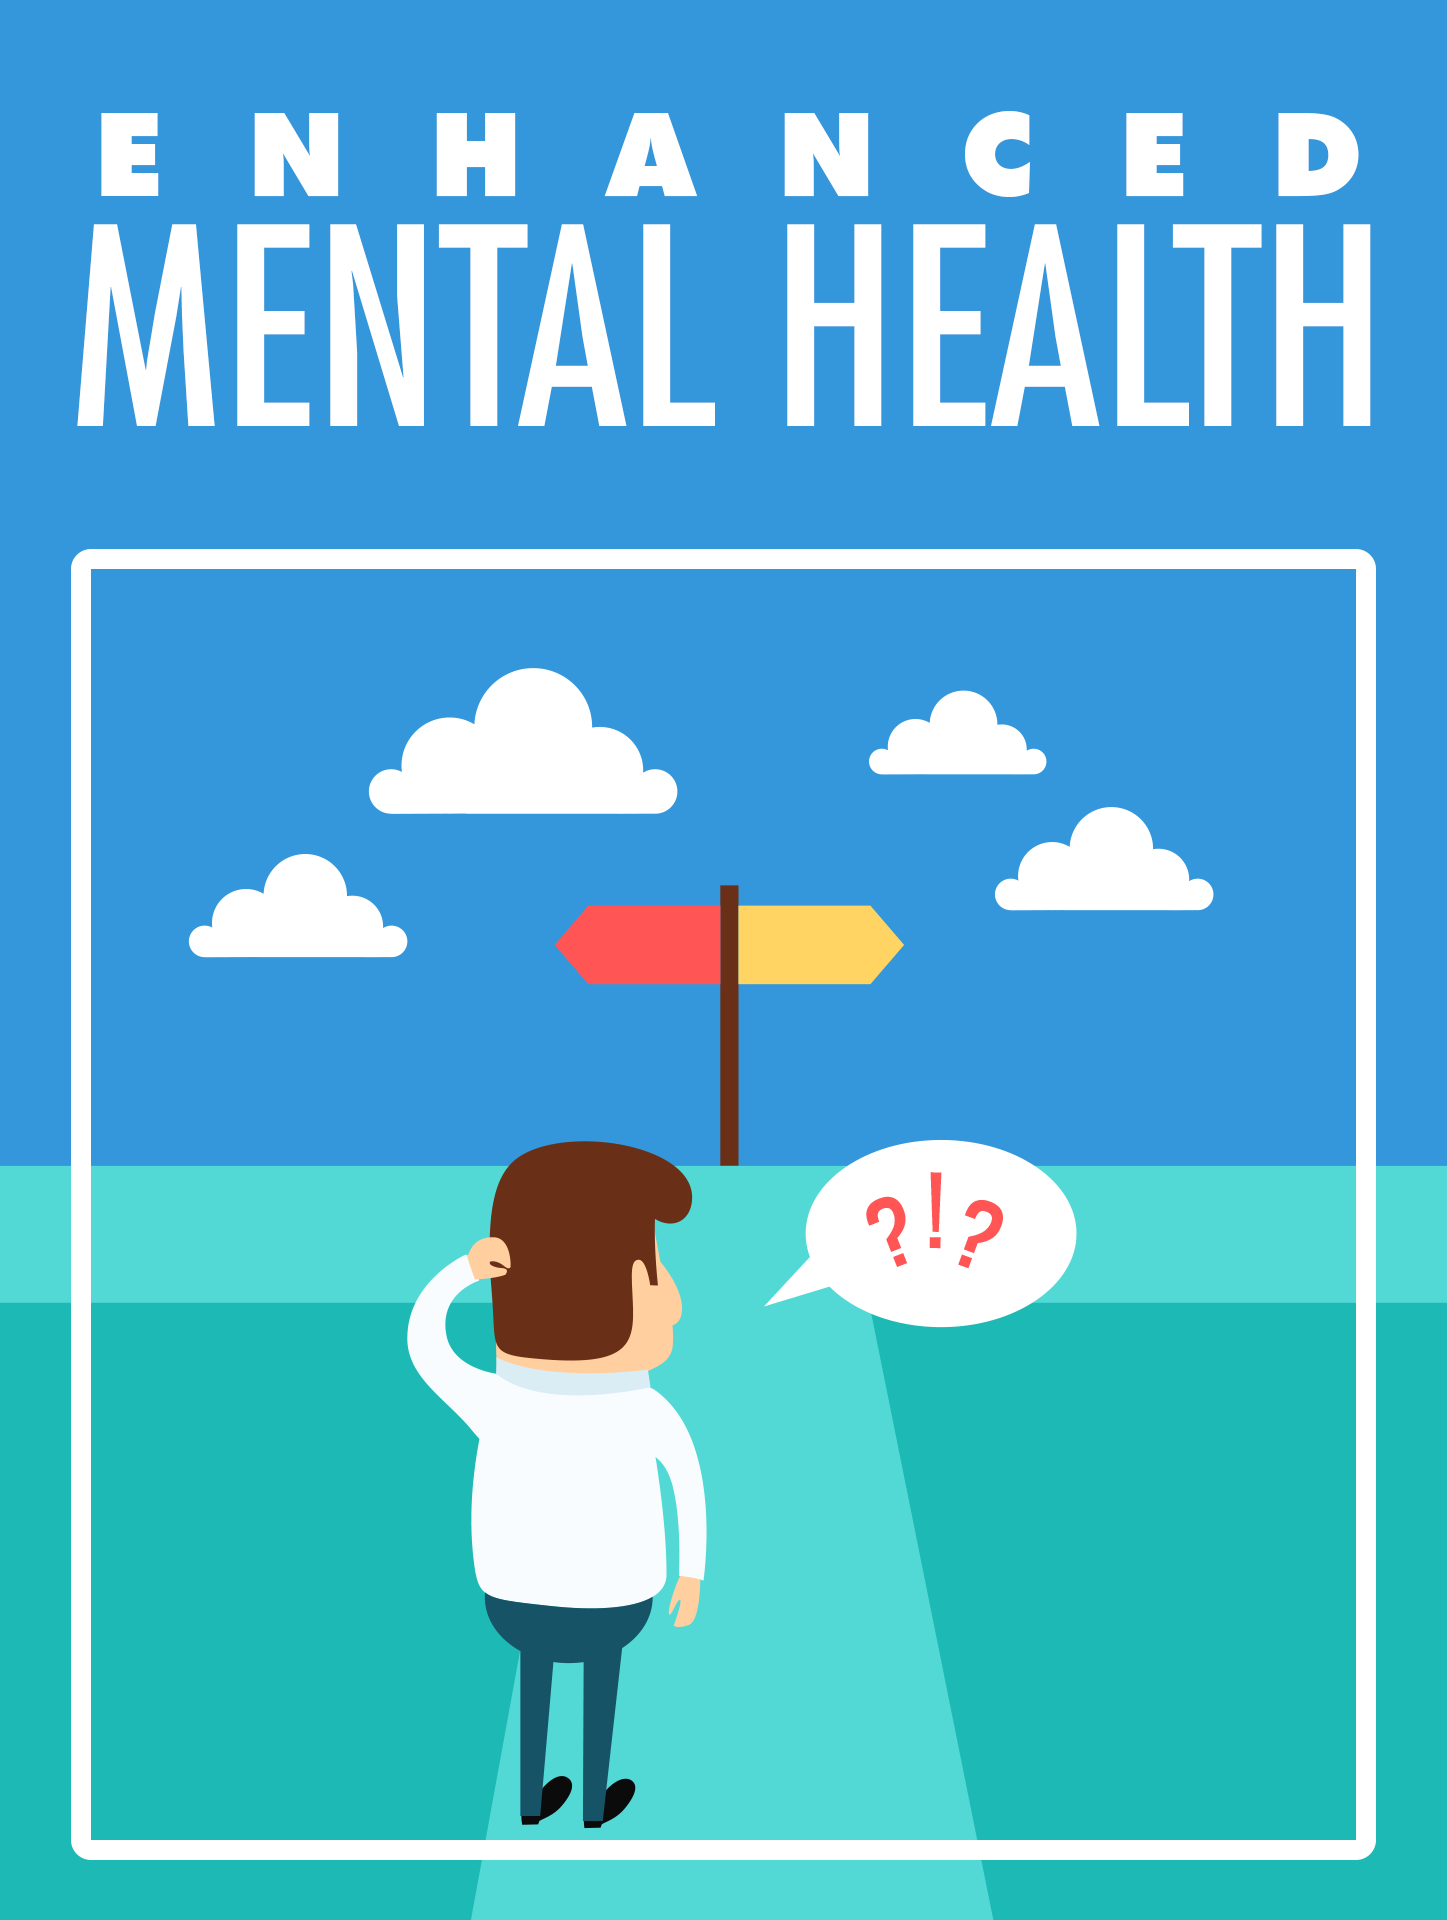 Enhanced Mental Health Ebook's Ebook Image